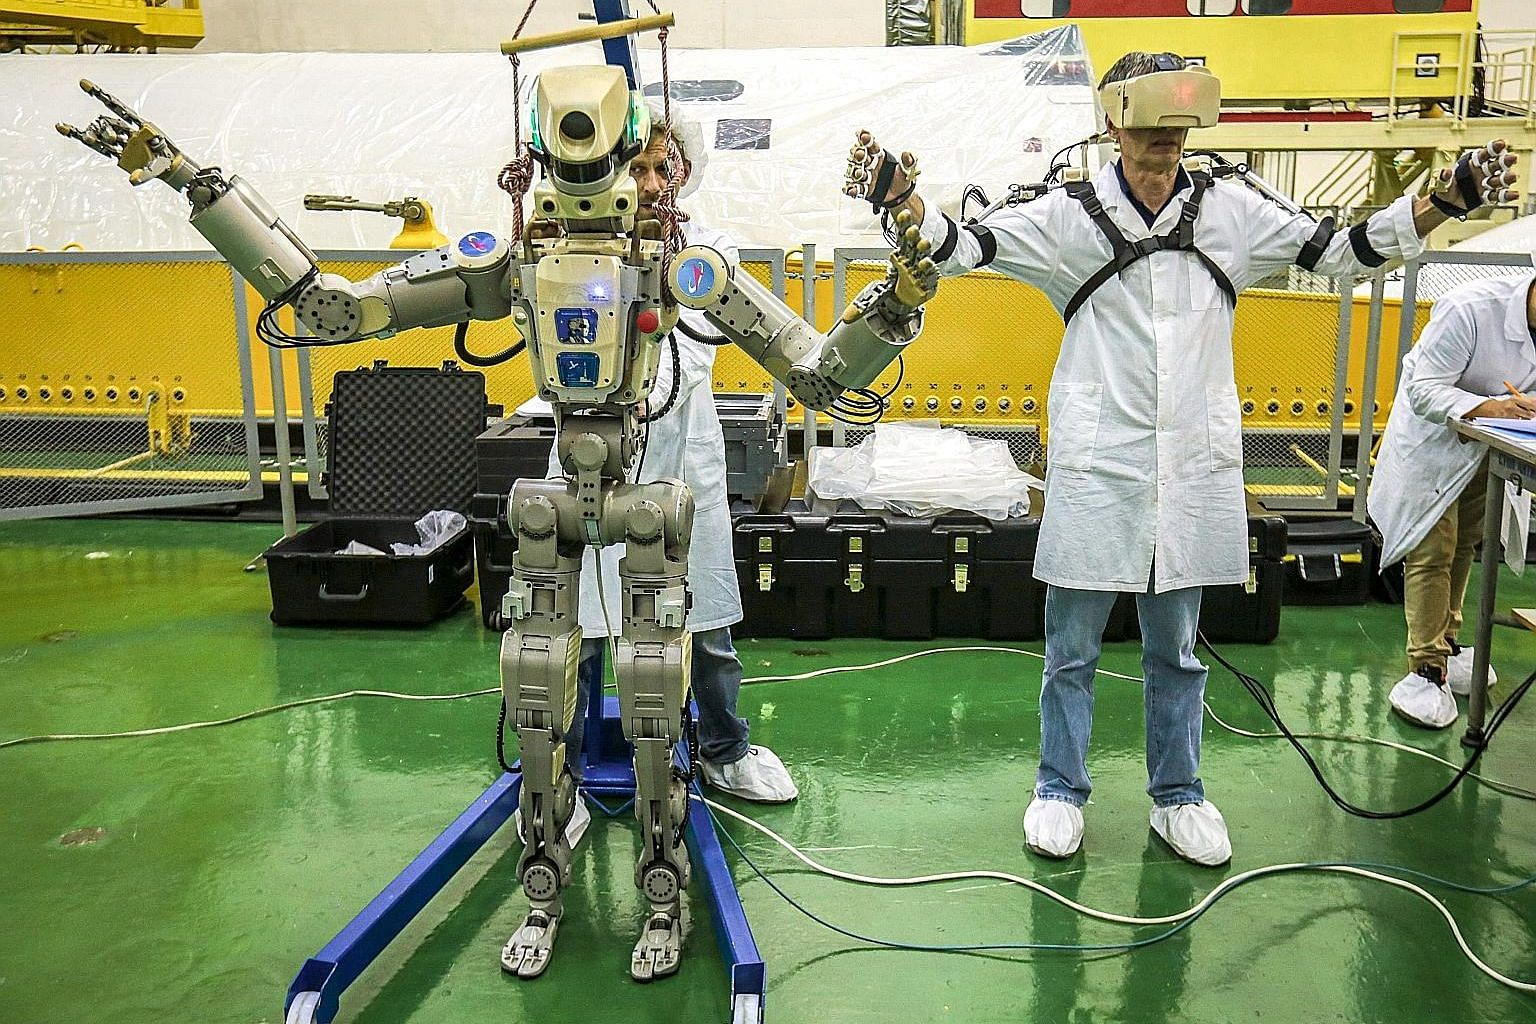 Russia's humanoid robot, Fedor, being tested last month ahead of its flight yesterday on board the Soyuz MS-14 spacecraft bound for the International Space Station. Fedor copies human movements, a key skill that allows it to remotely help astronauts.